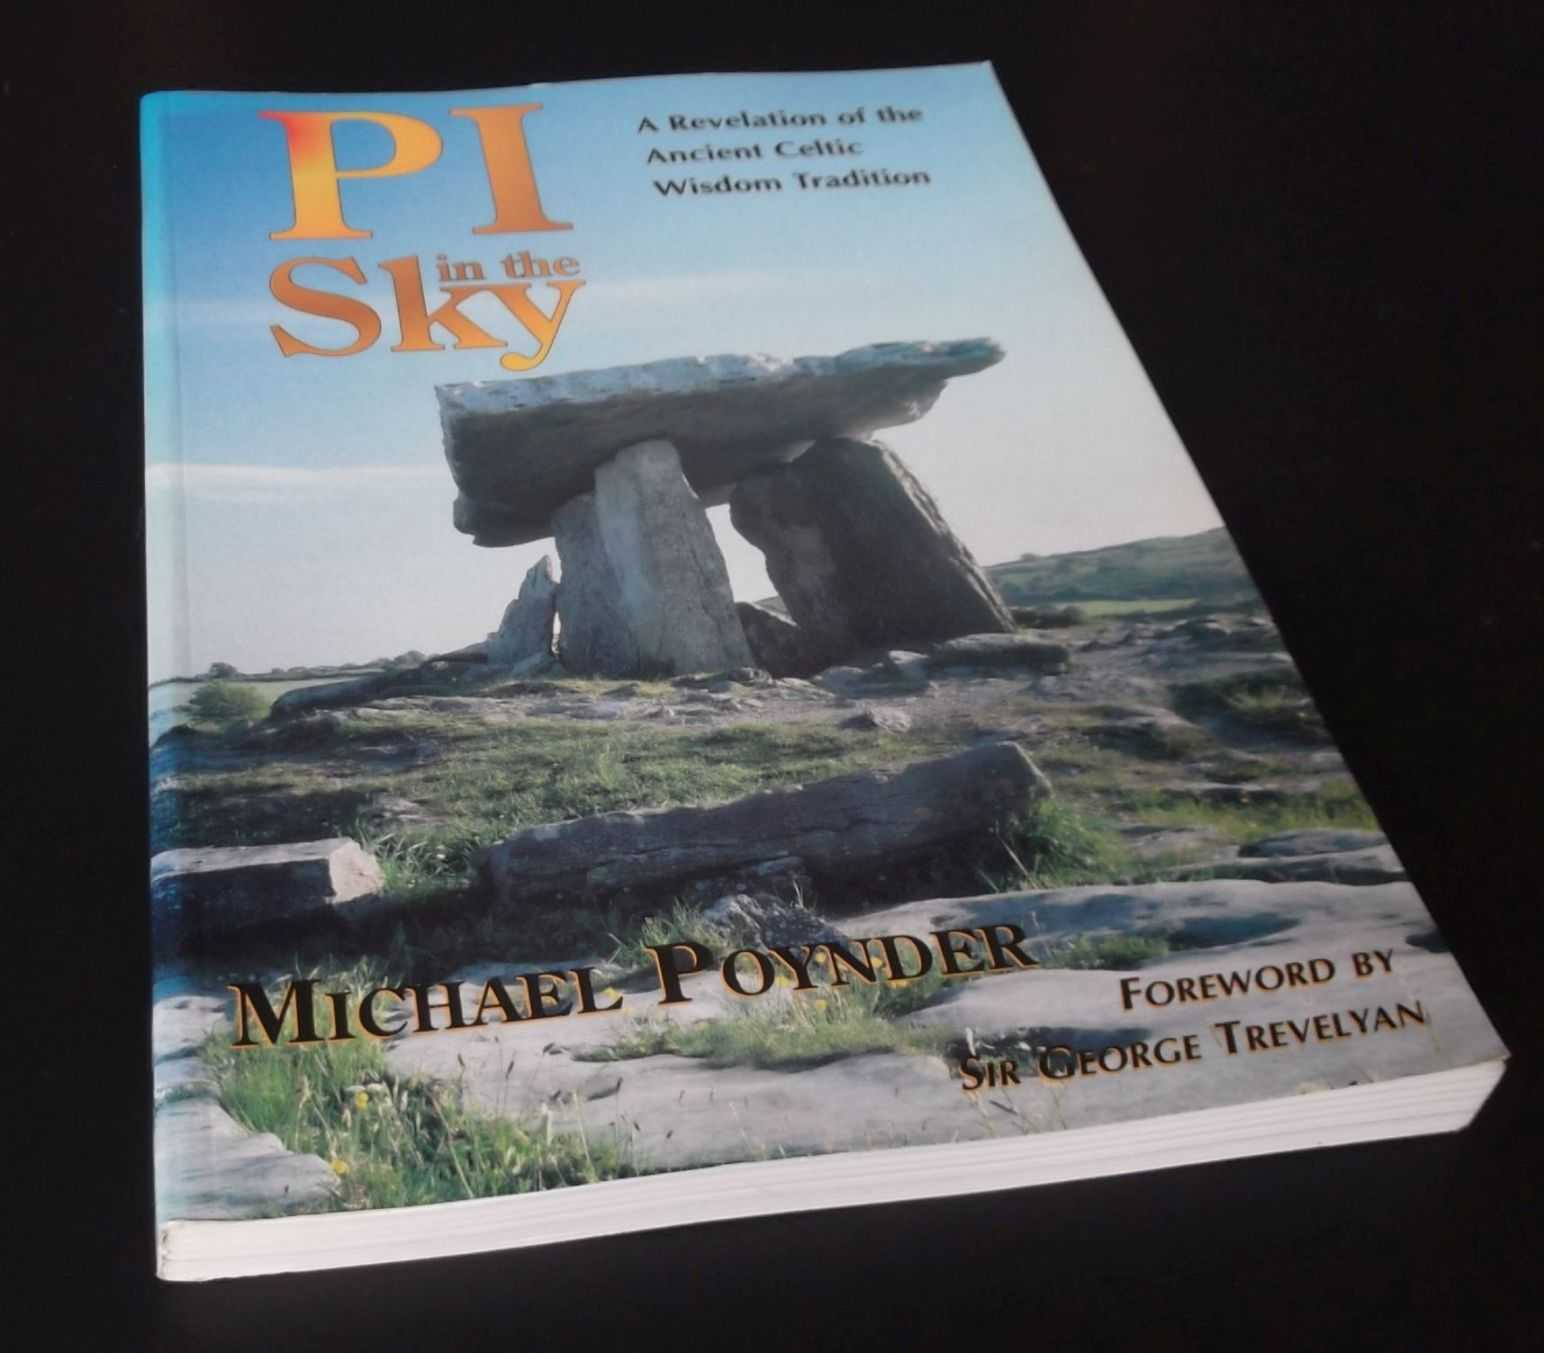 MICHAEL POYNDER - Pi in the Sky: A Revelation of the Ancient Celtic Wisdom Tradition